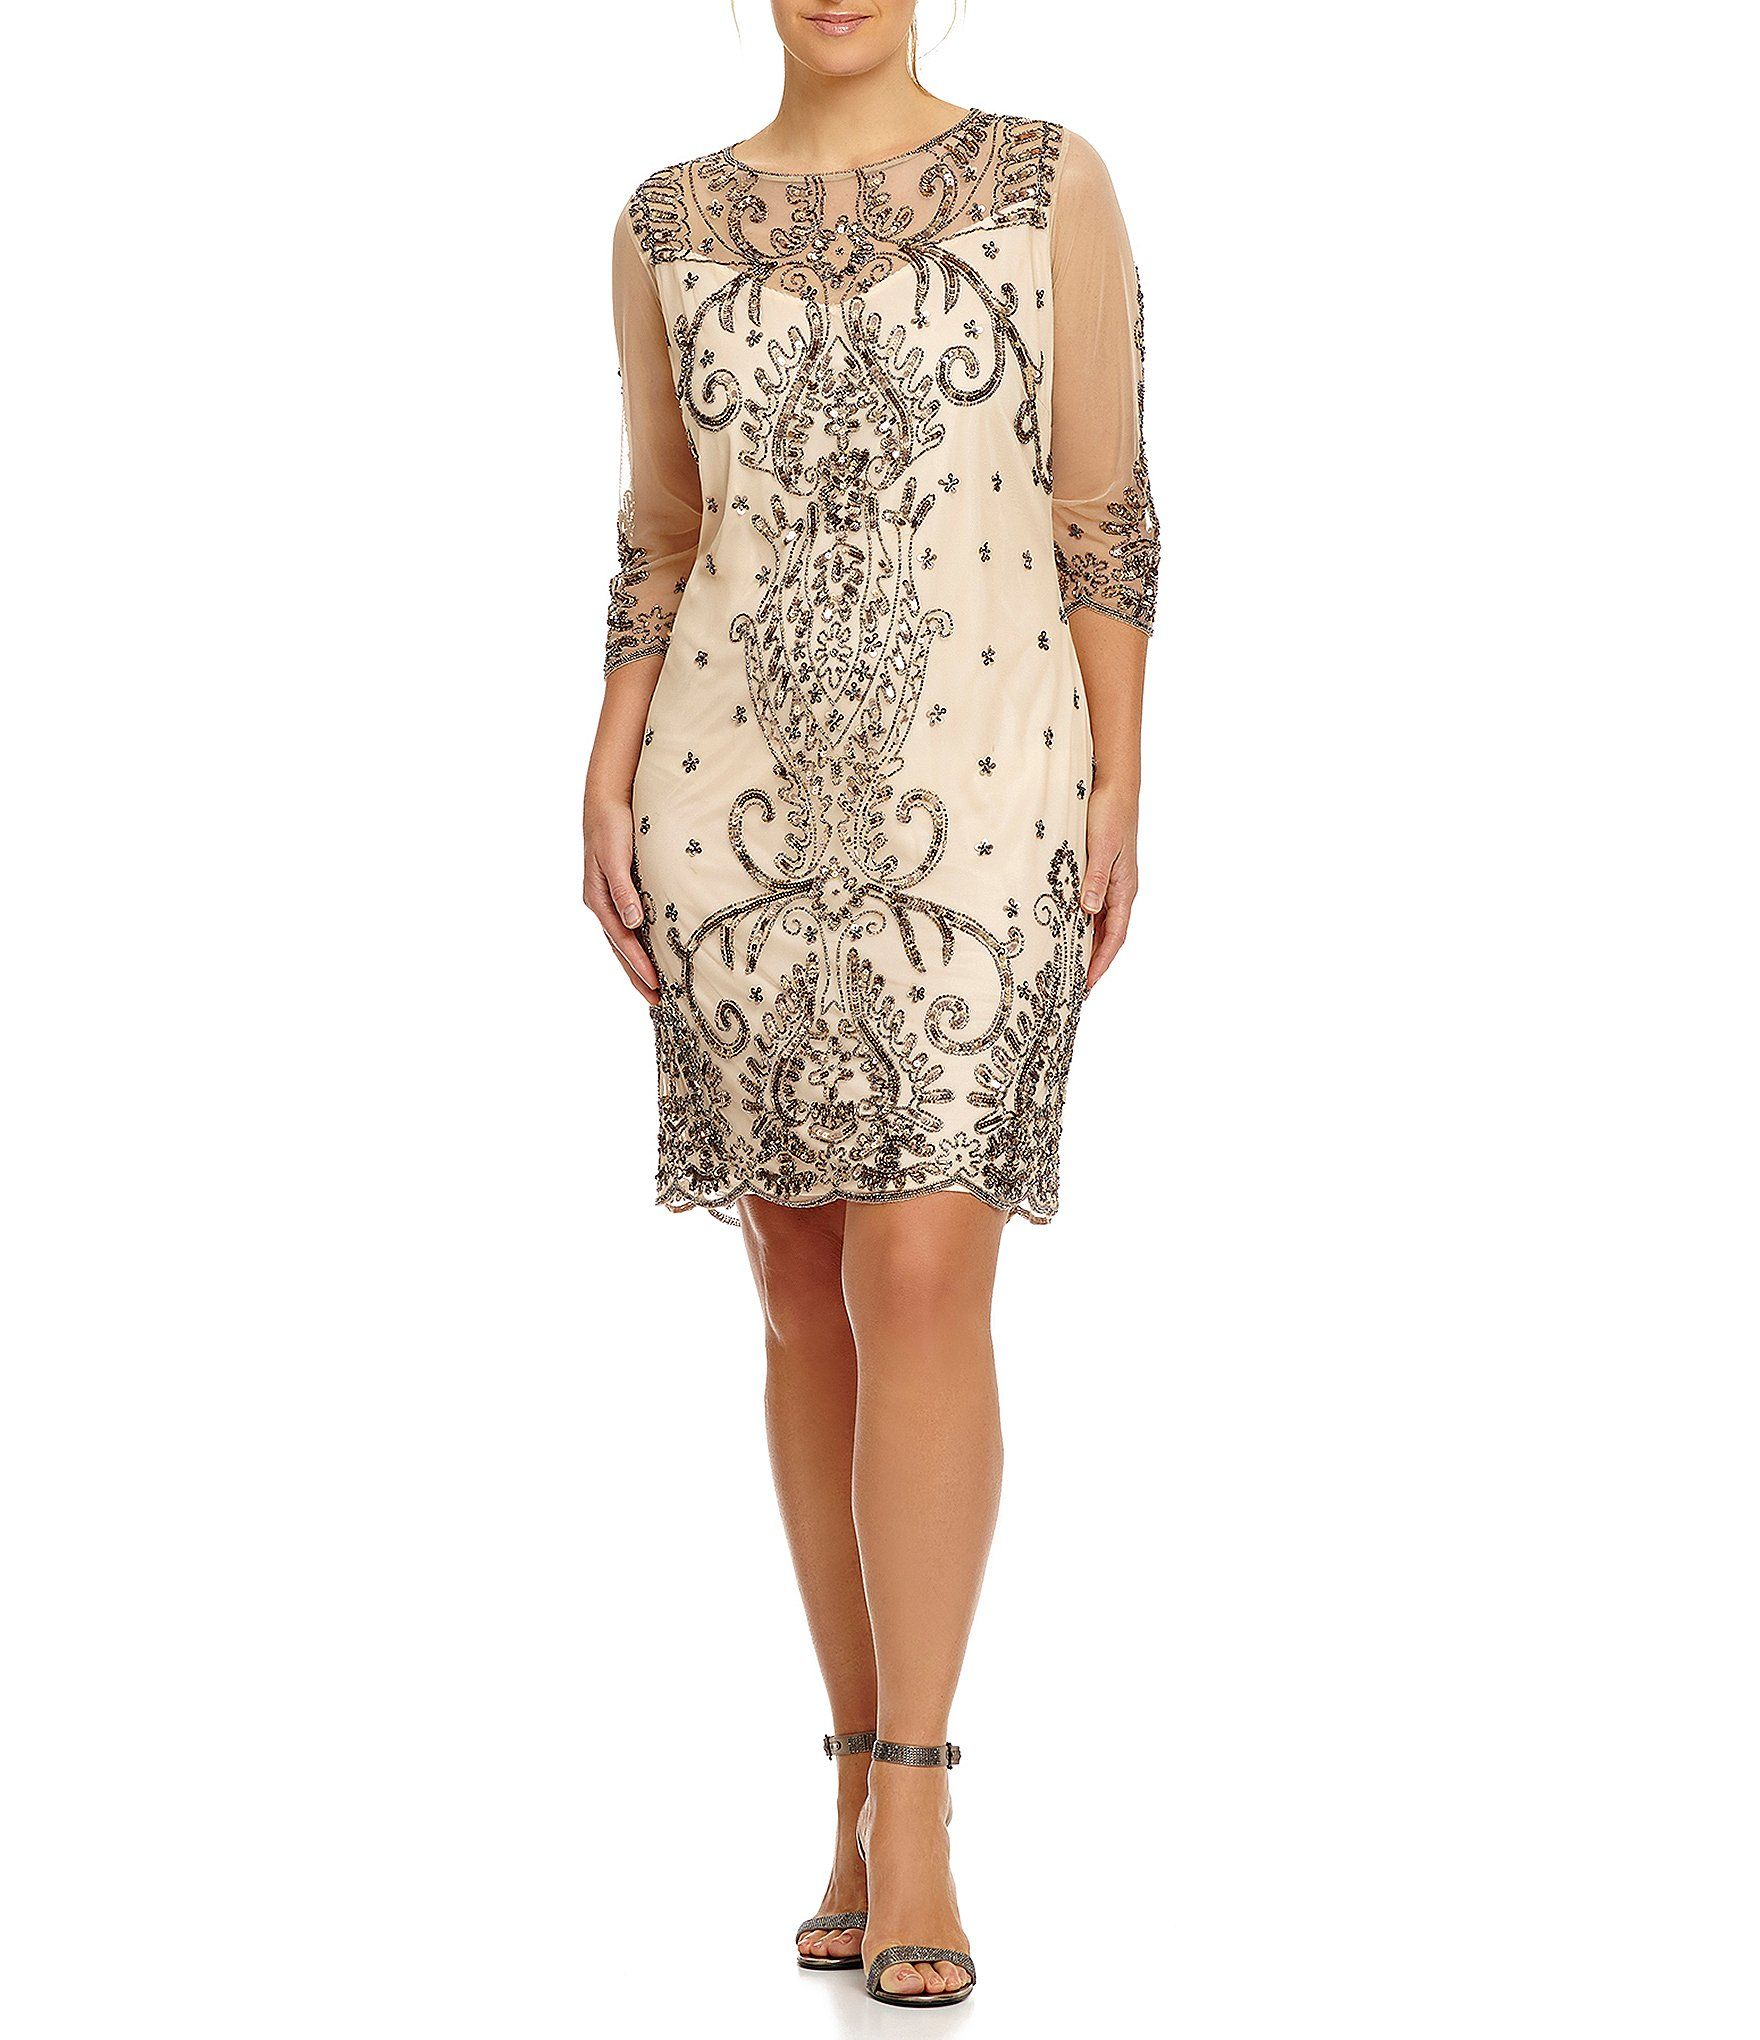 0e5a0edbd98 Shop for Pisarro Nights Plus Illusion Sleeve Beaded Sheath Dress at  Dillards.com. Visit Dillards.com to find clothing